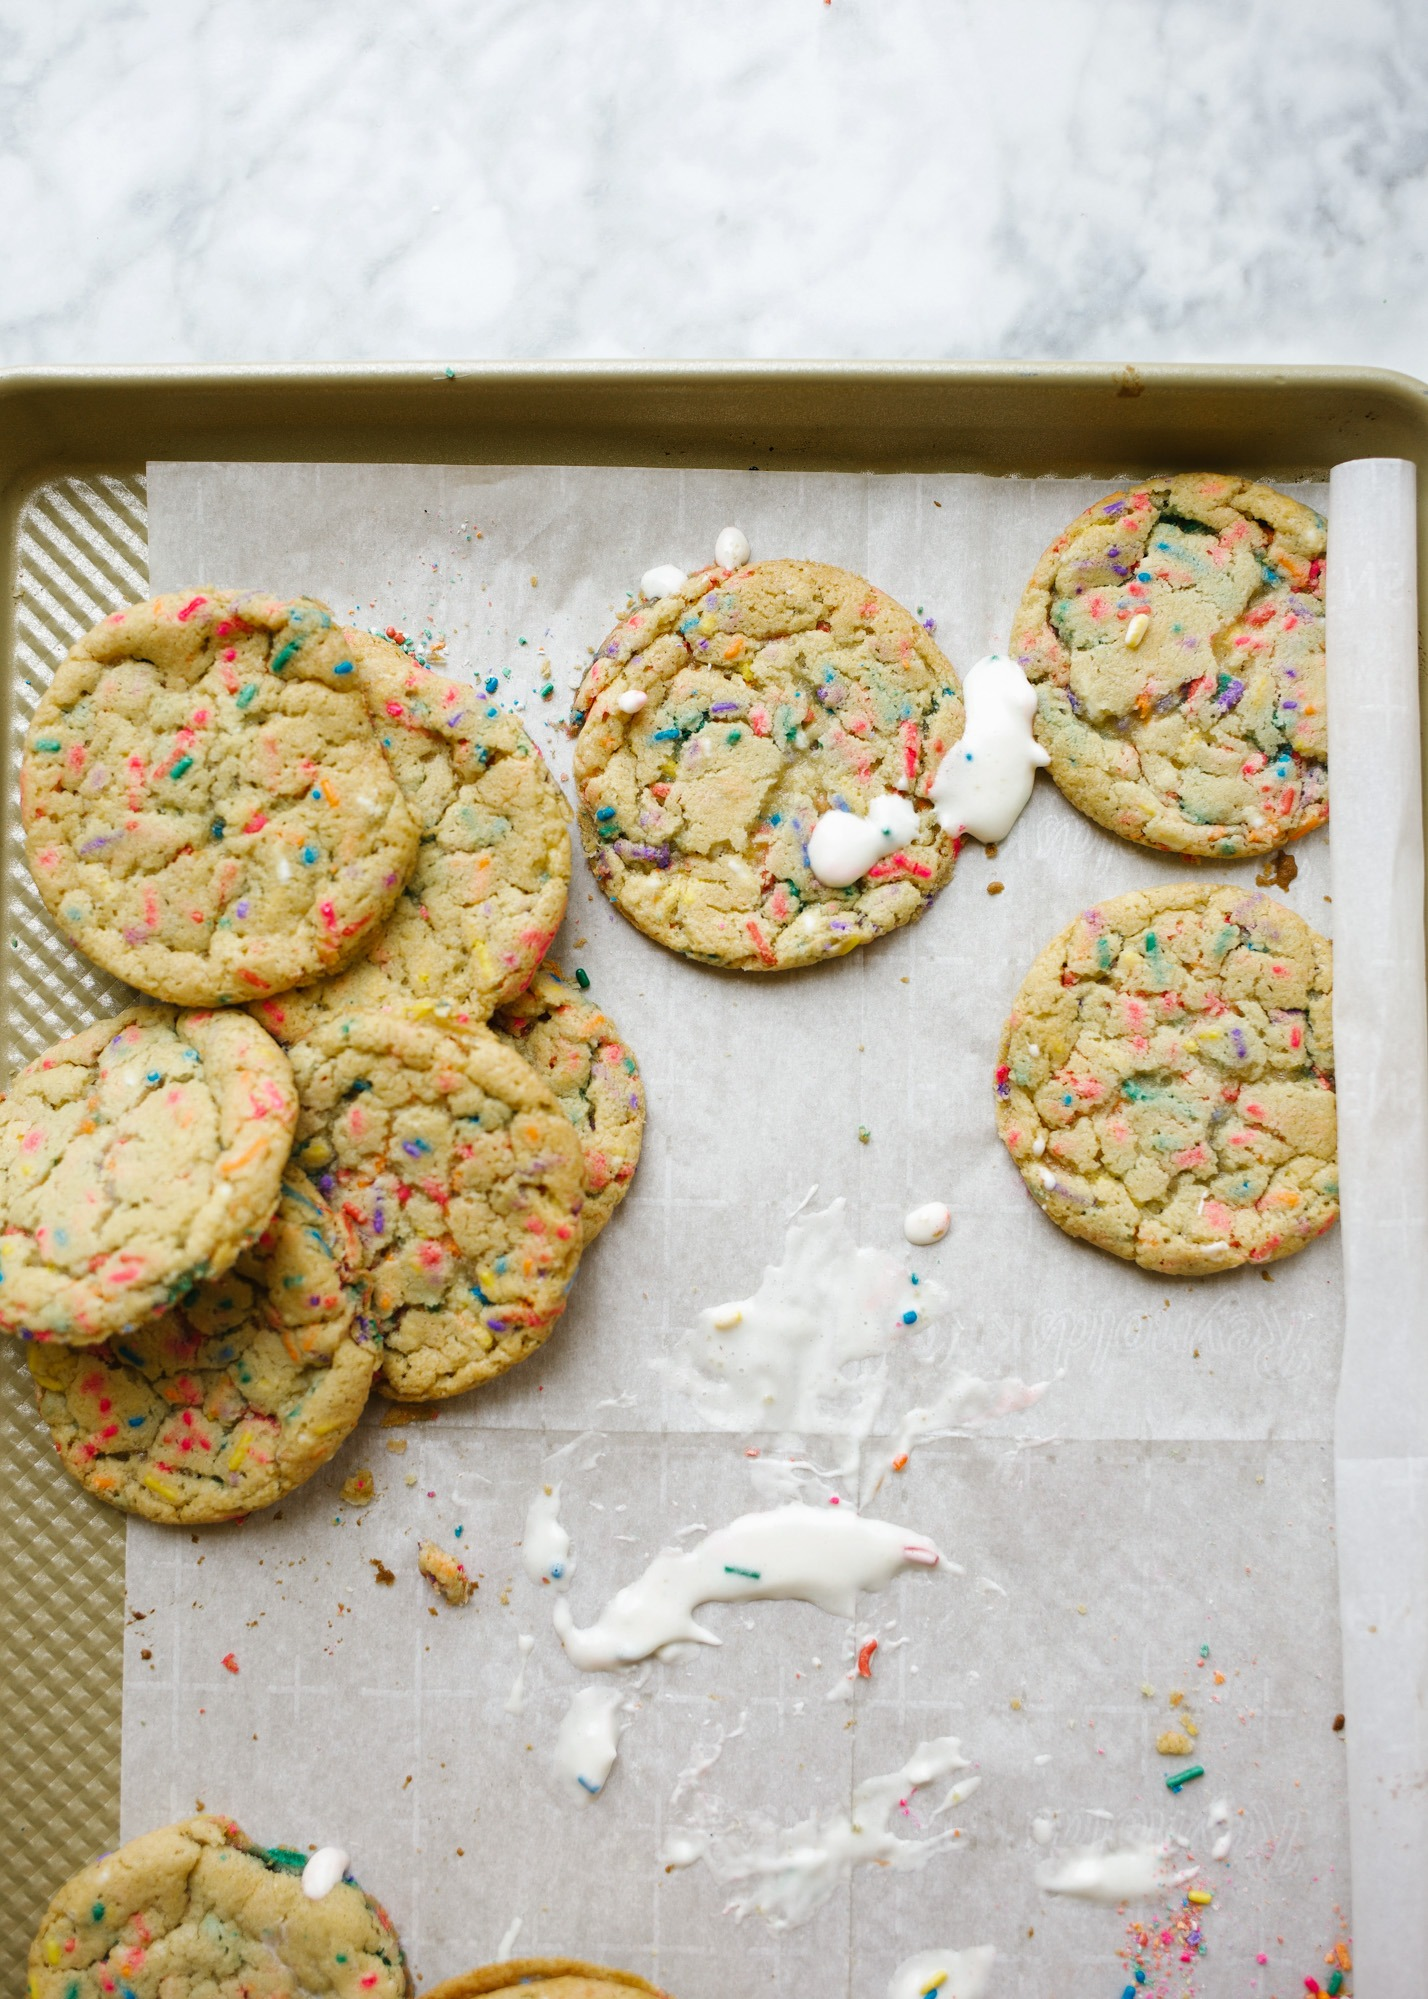 Funfetti Ice Cream Sandwiches by Wood and Spoon blog. These are soft and chewy sugar cookies loaded with sprinkles and box cake mix flavor. These nostalgic treats are stuffed with a no-churn ice birthday cake ice cream and make terrific summertime treats. Learn how simple these frozen desserts are on thewoodandspoon.com